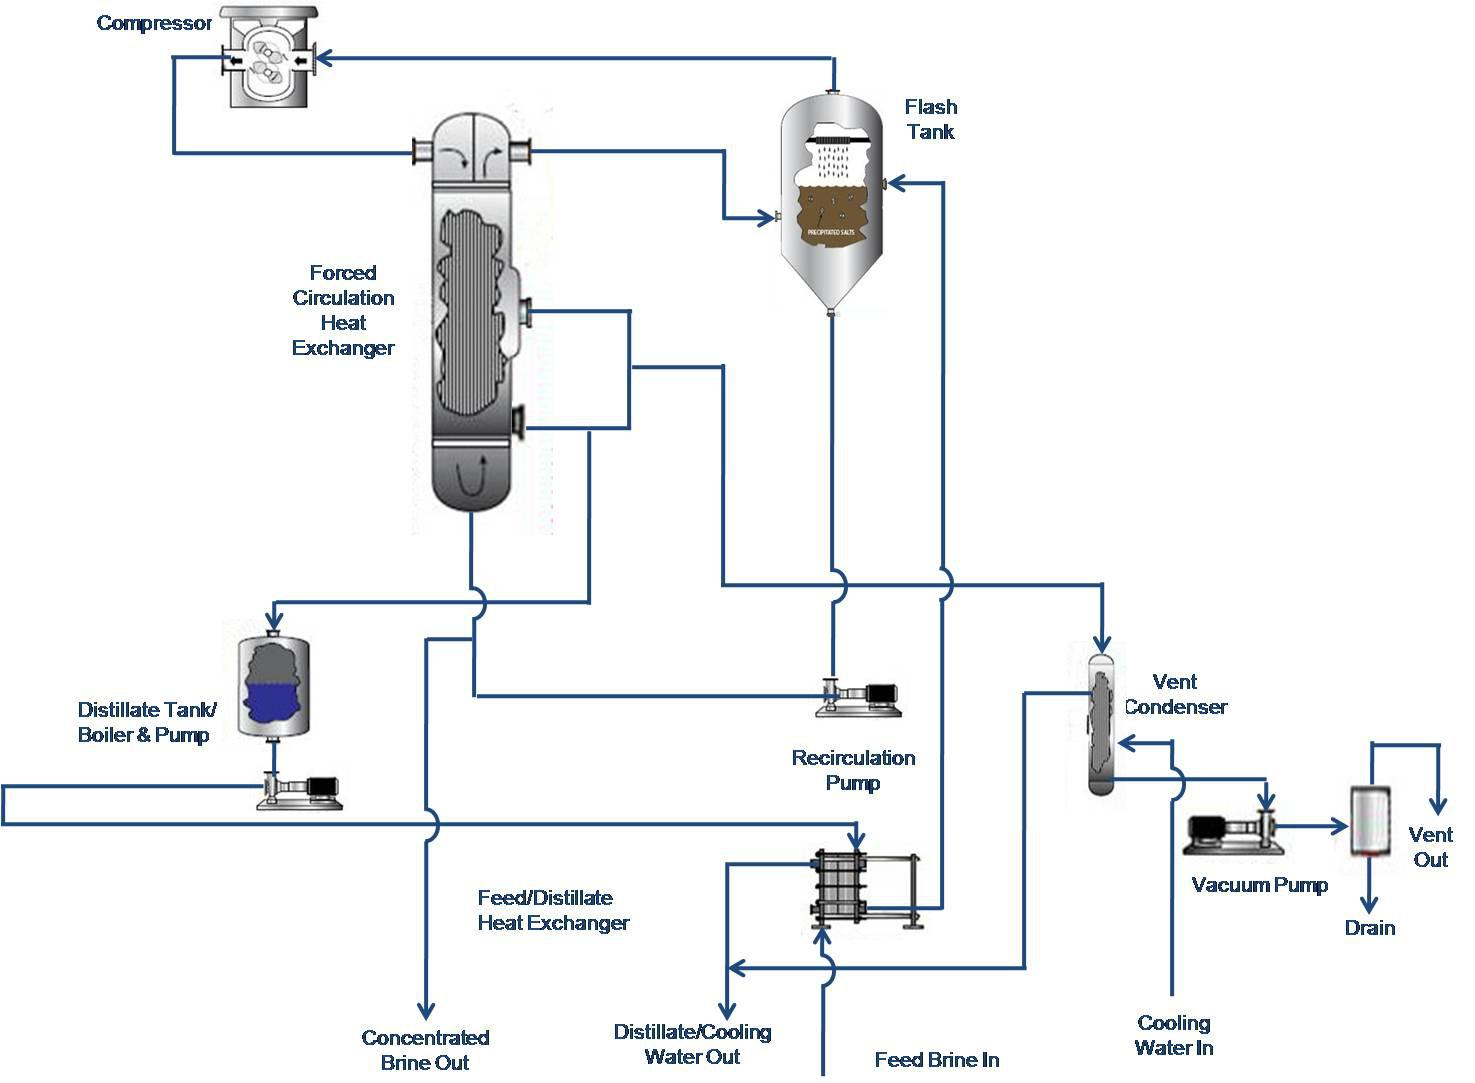 Evaporator concentrates brine pond for about 1 cent per gallon process flow diagram pooptronica Gallery